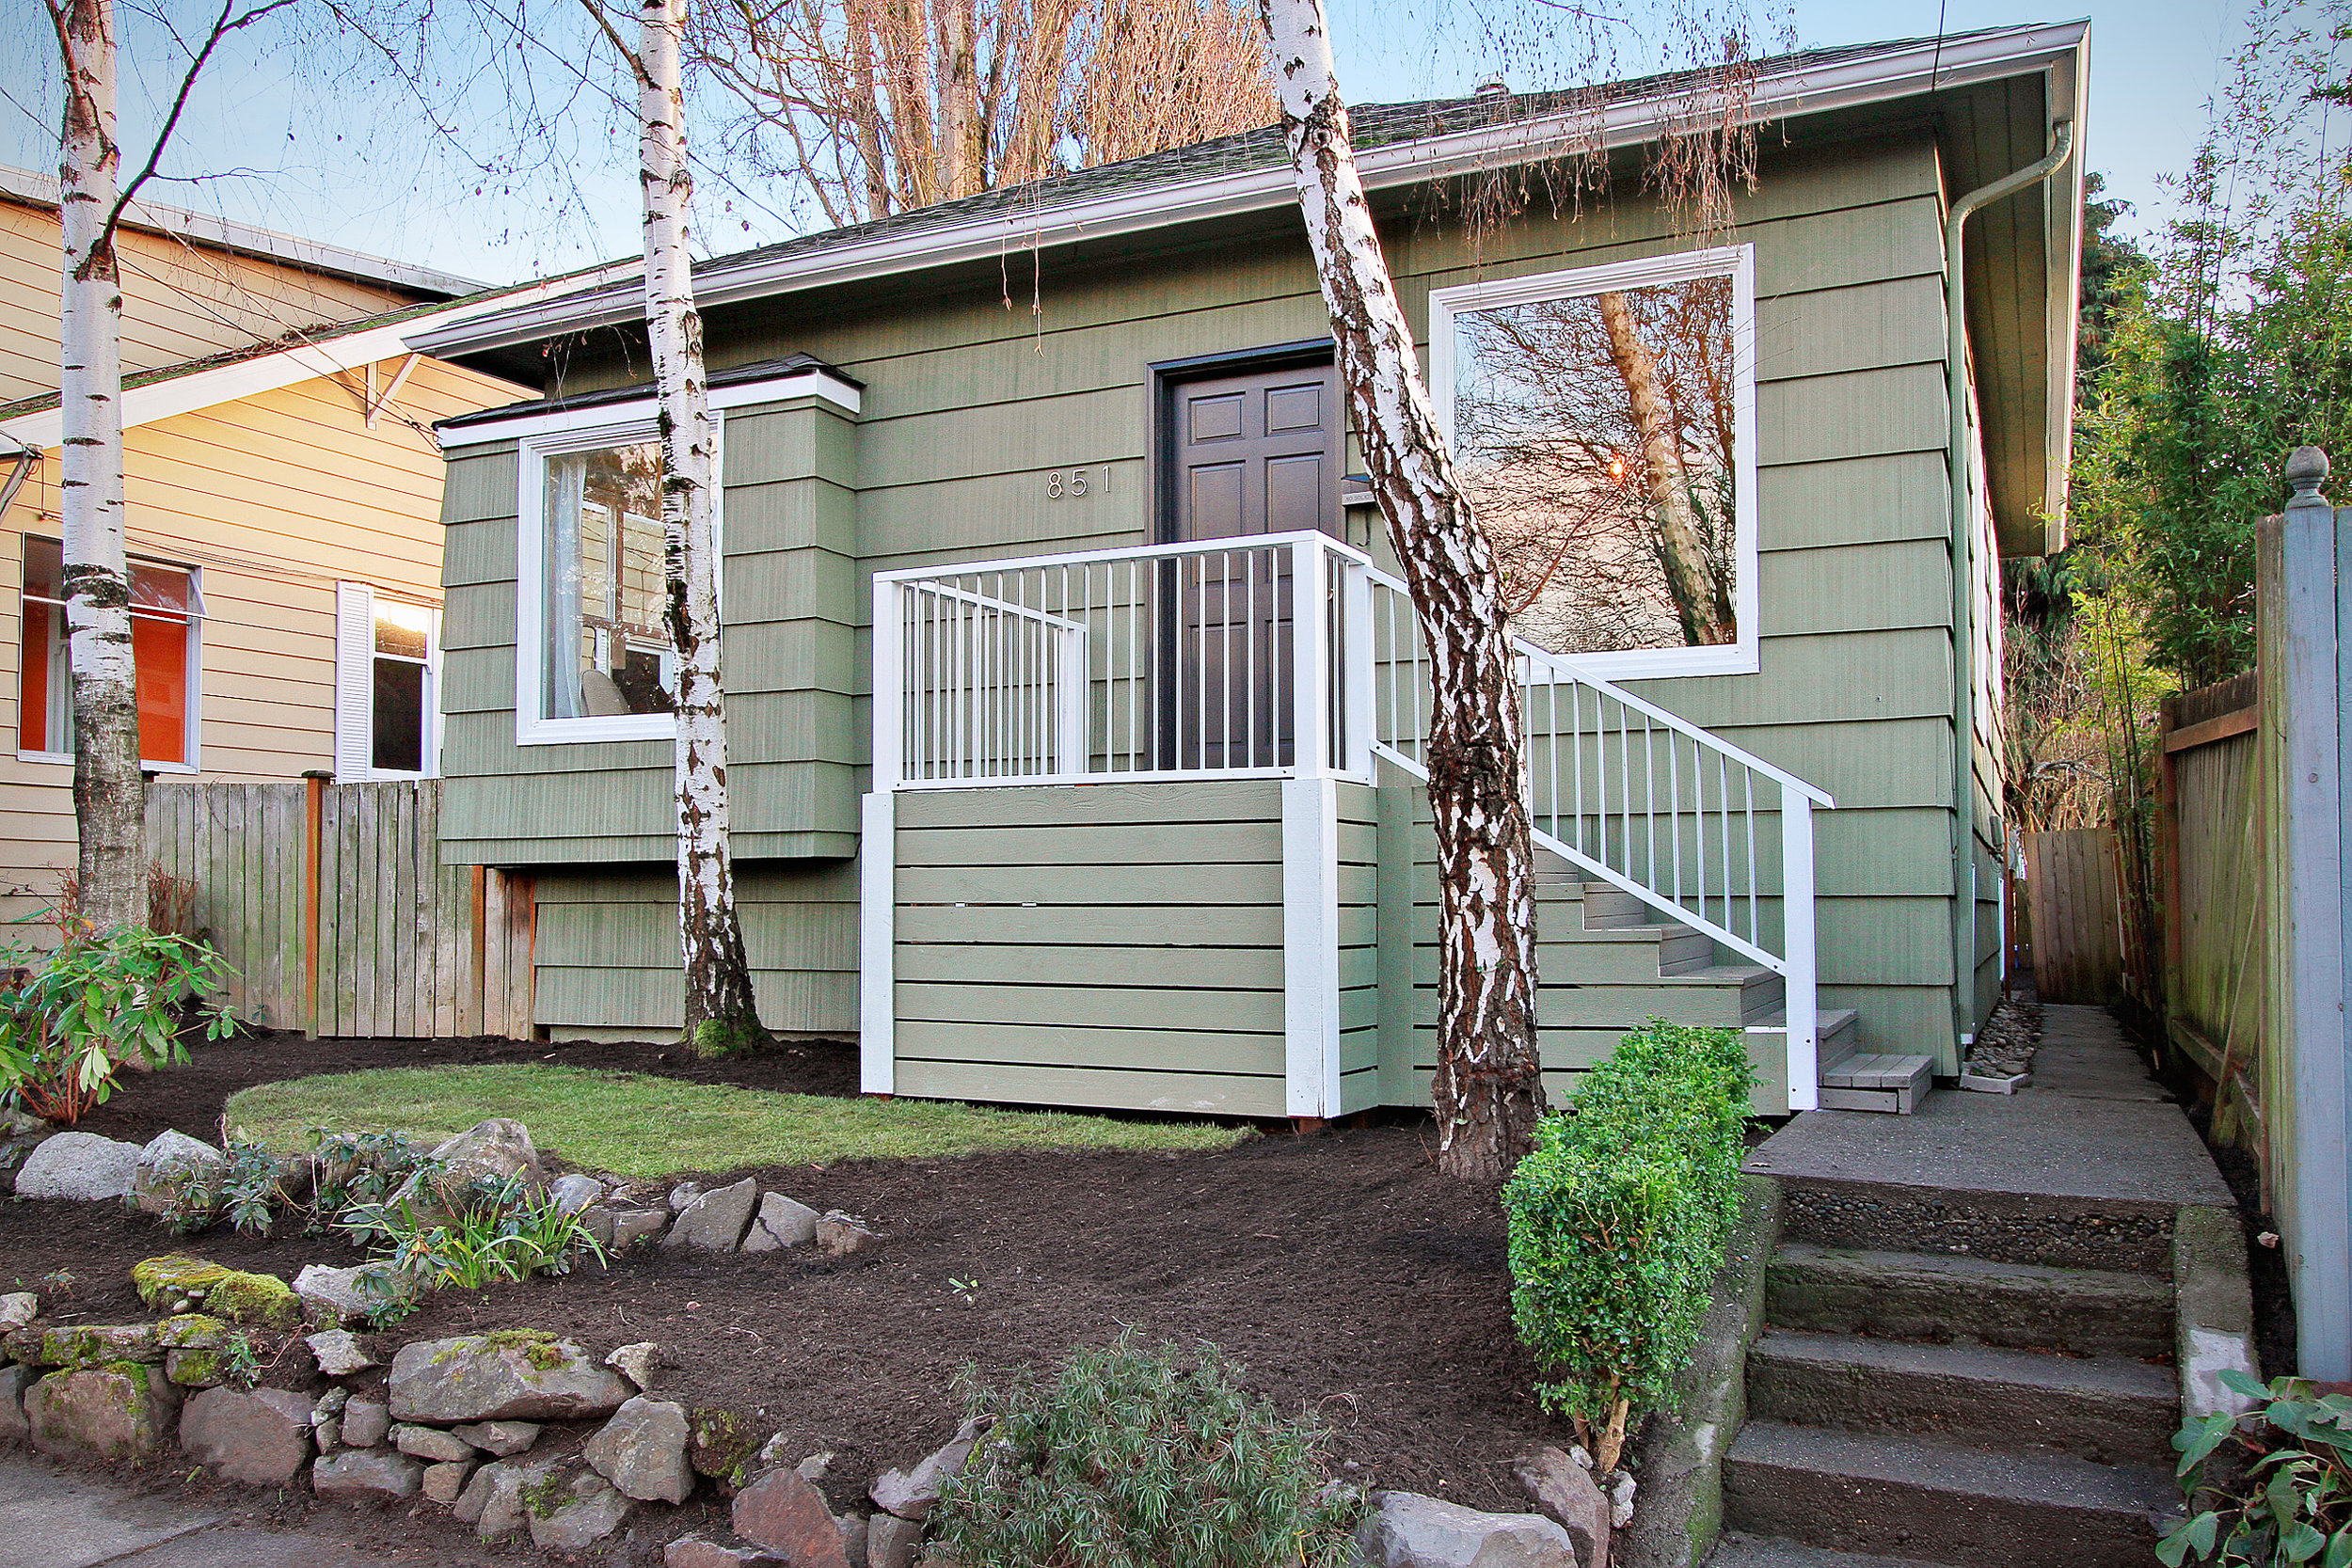 851 NW 61st St, Seattle WA 98107  SOLD for $760,000  For more photos & information,   click here